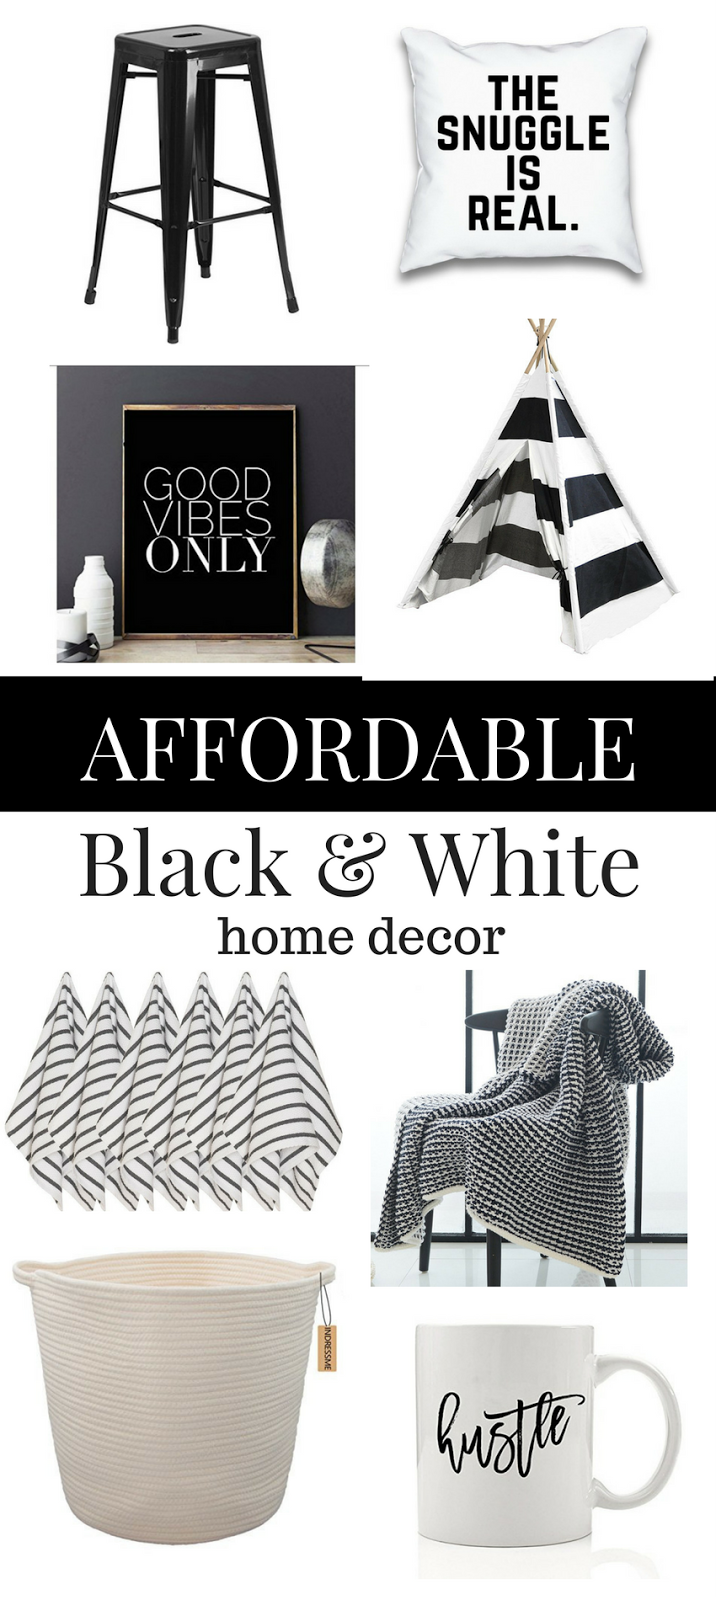 22 Black And White Home Decor Pieces You Ll Love White Home Decor Black Decor Black And White Pillows